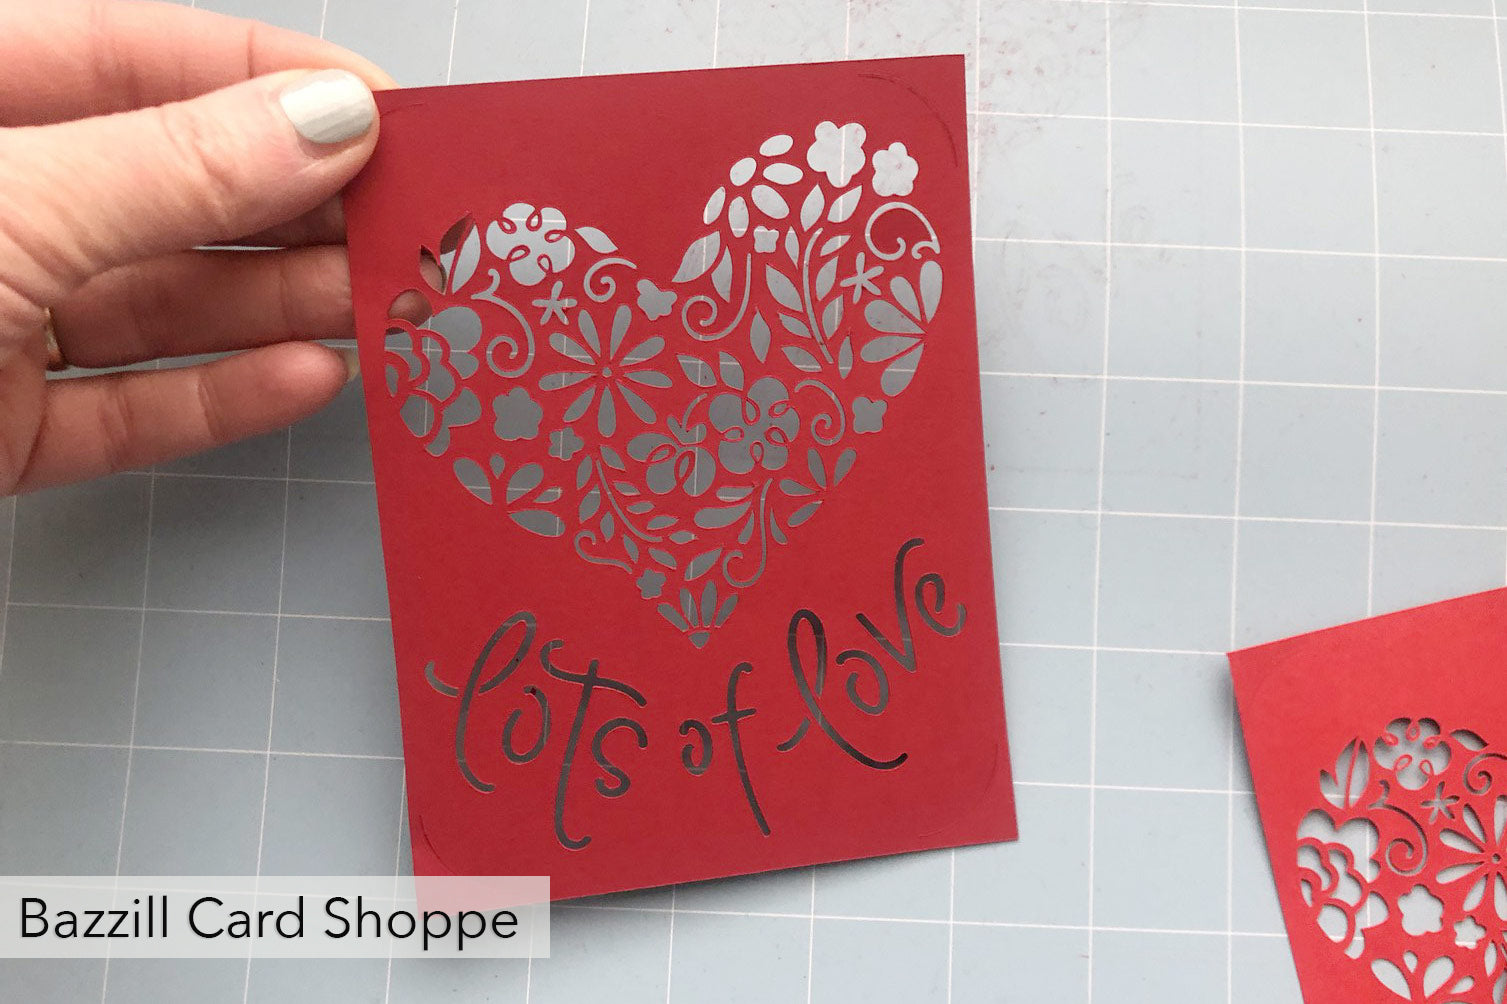 bazzill card shoppe test cut